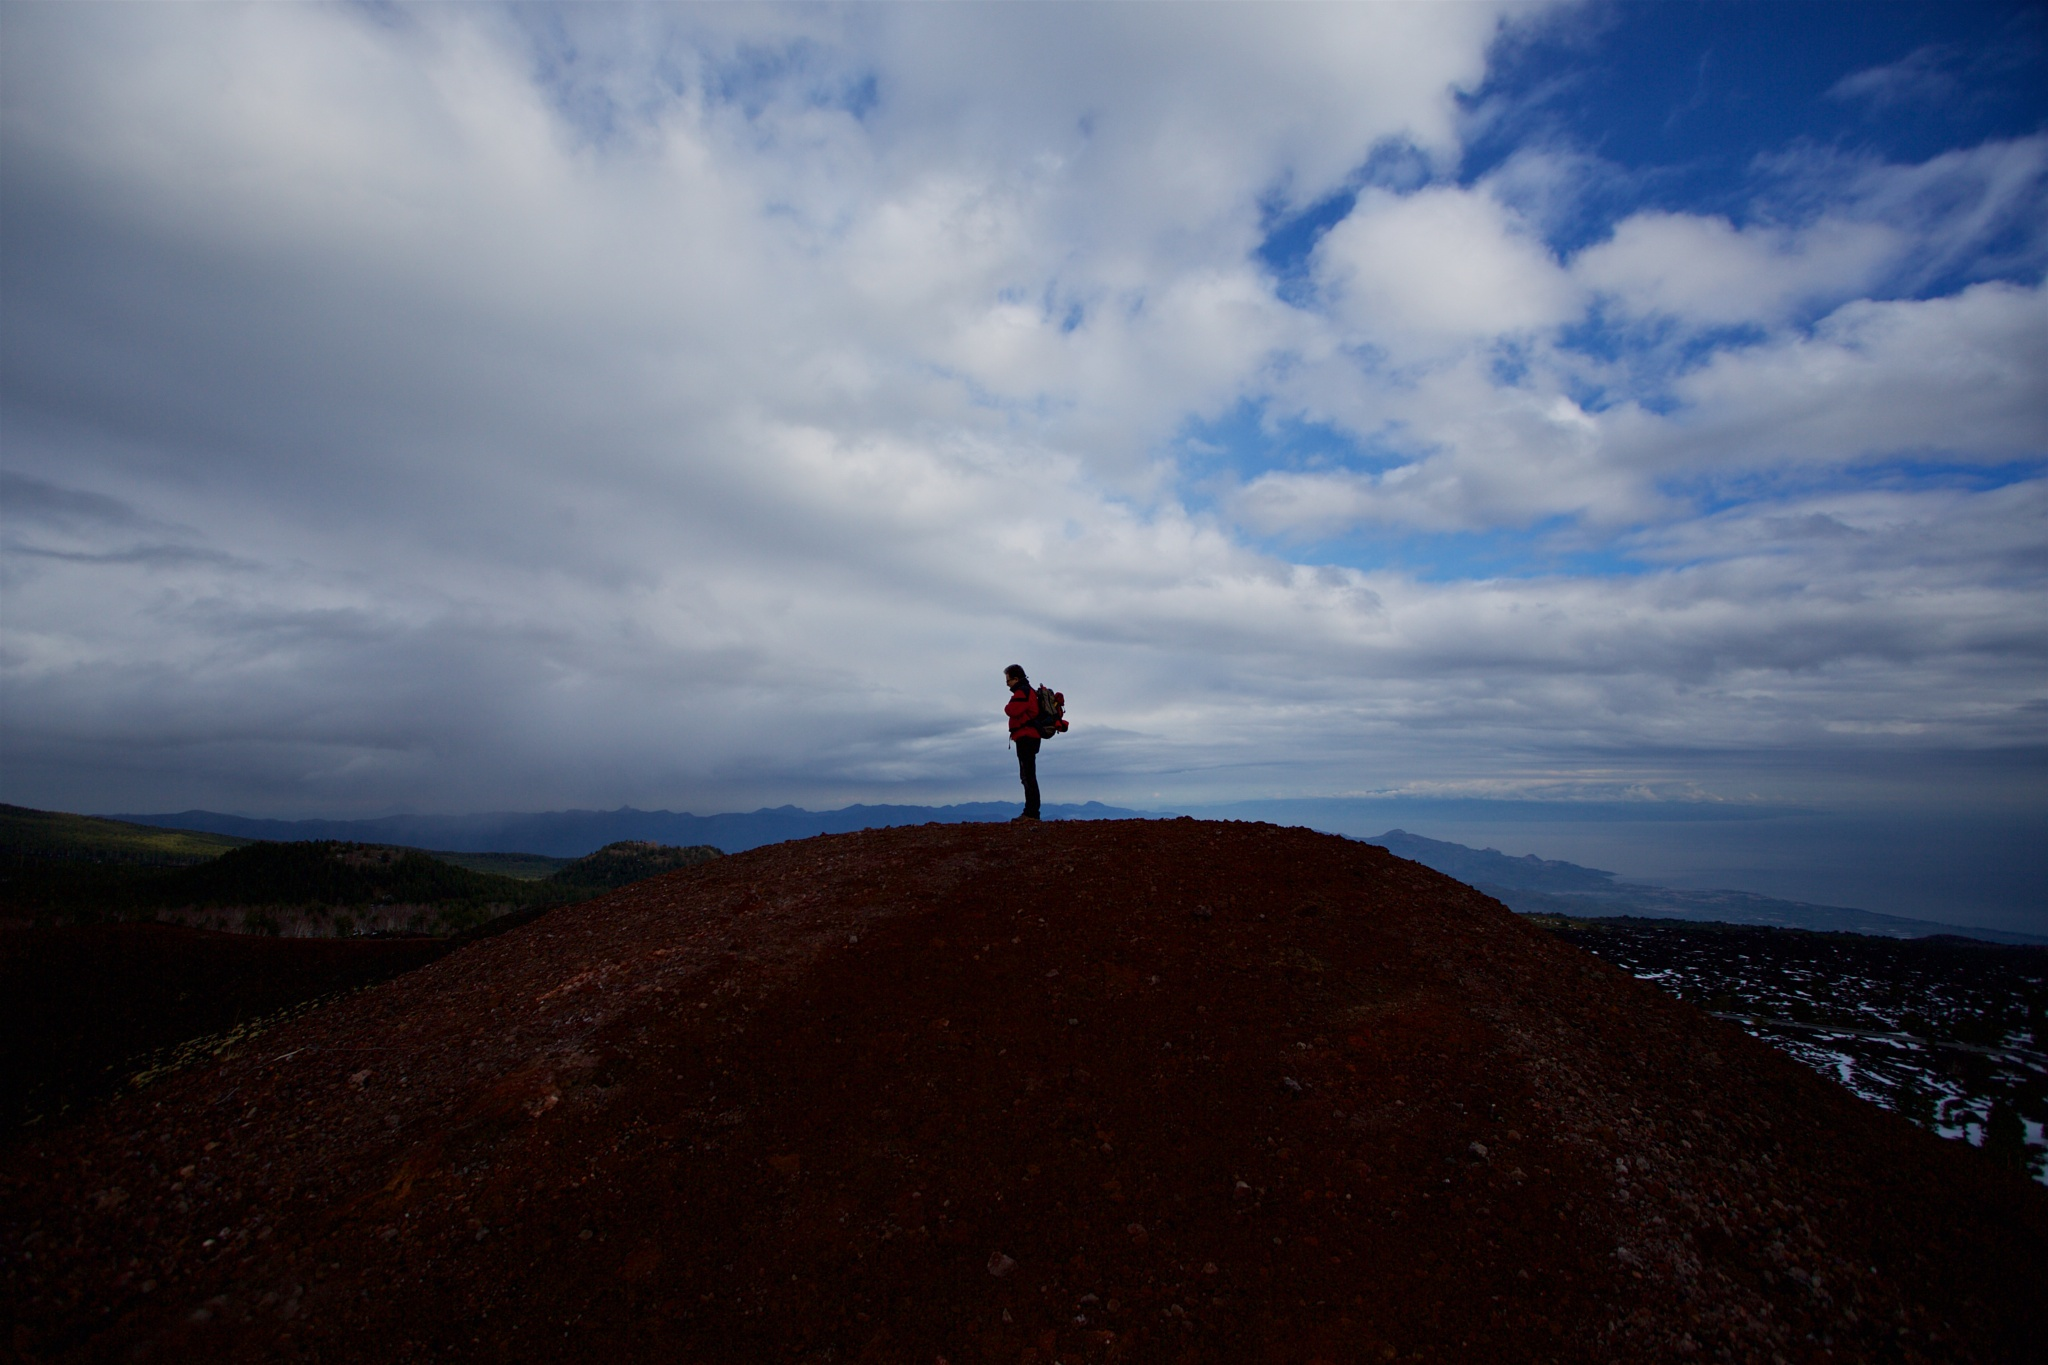 man on the volcano by paolotomaselloct